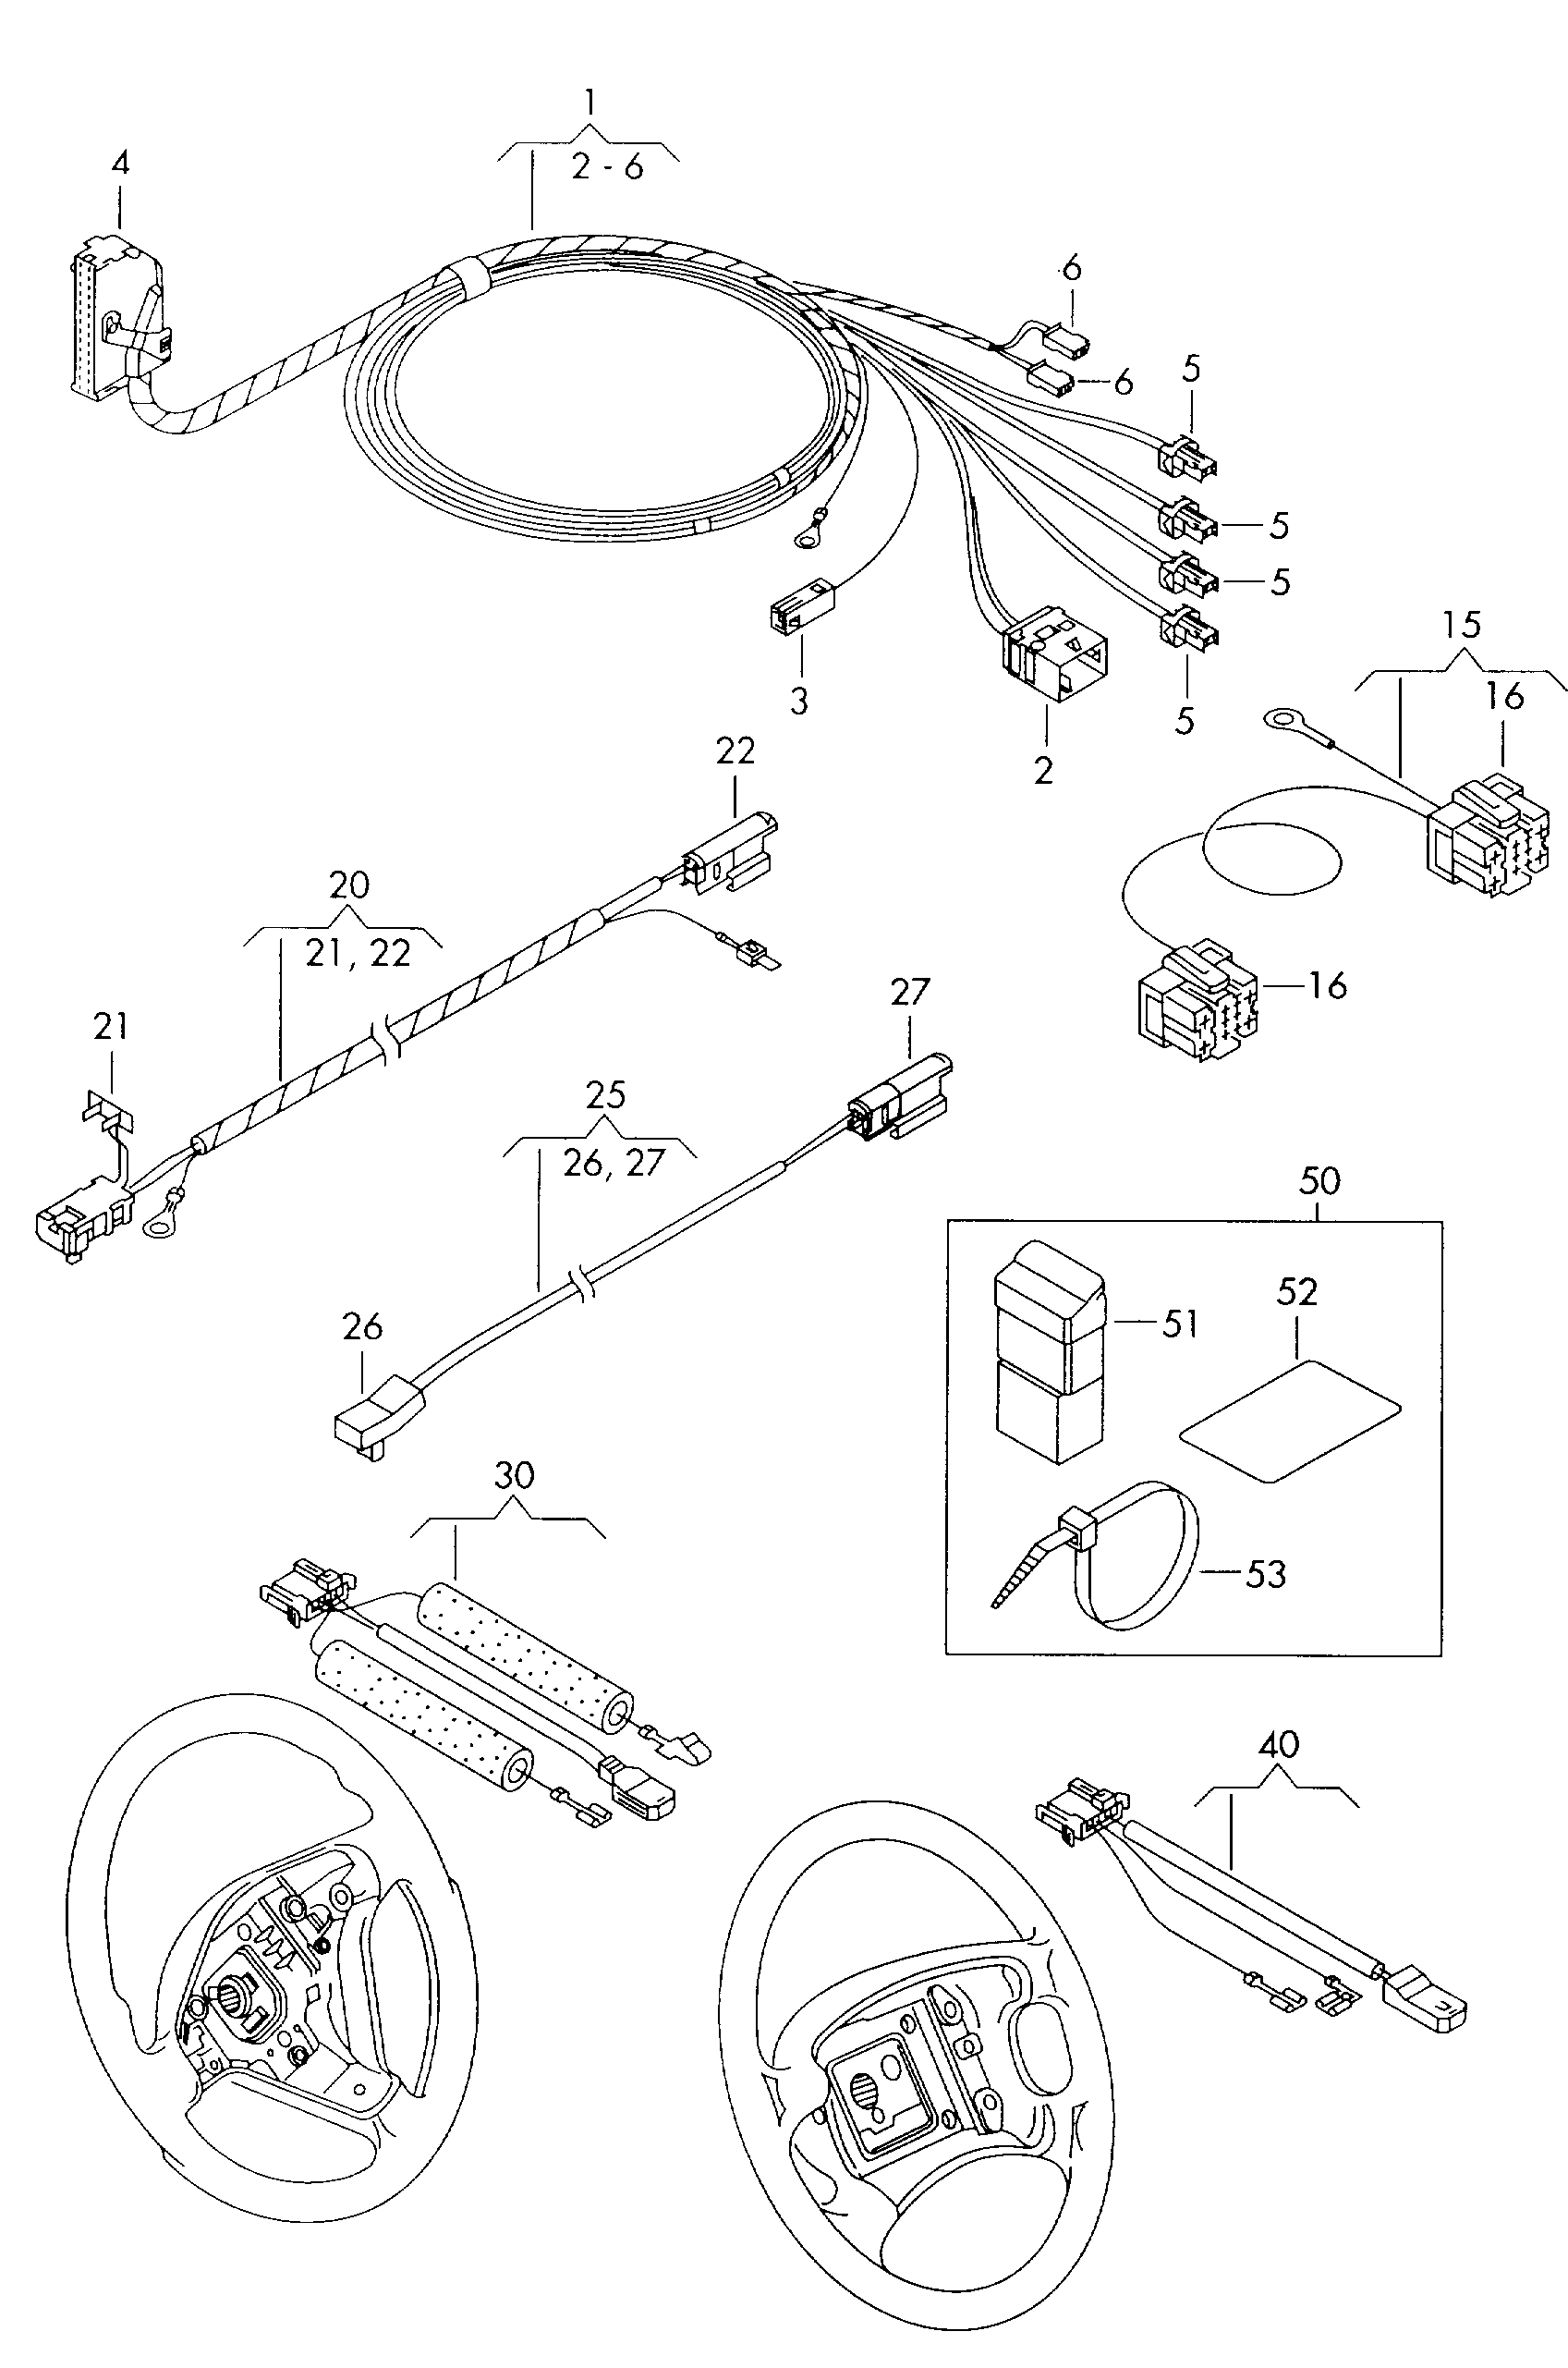 Vw Fuel Injector Wiring Diagram Gti Radio Discover Wire Your Golf Airbag